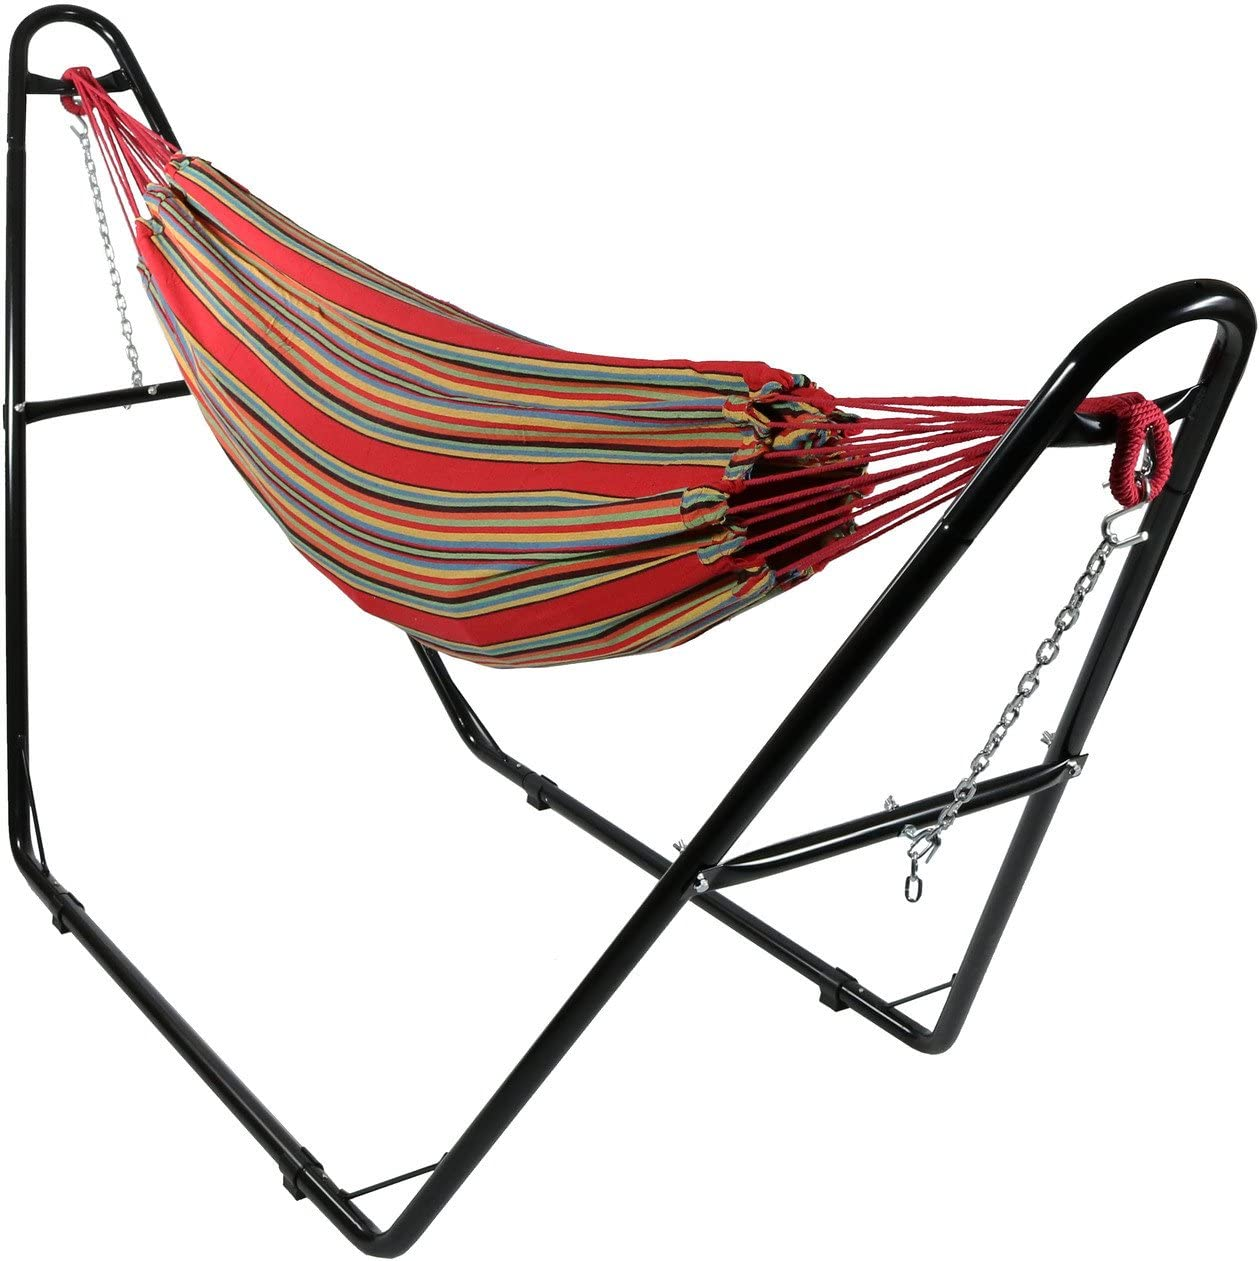 Sunnydaze Brazilian 2-Person Hammock